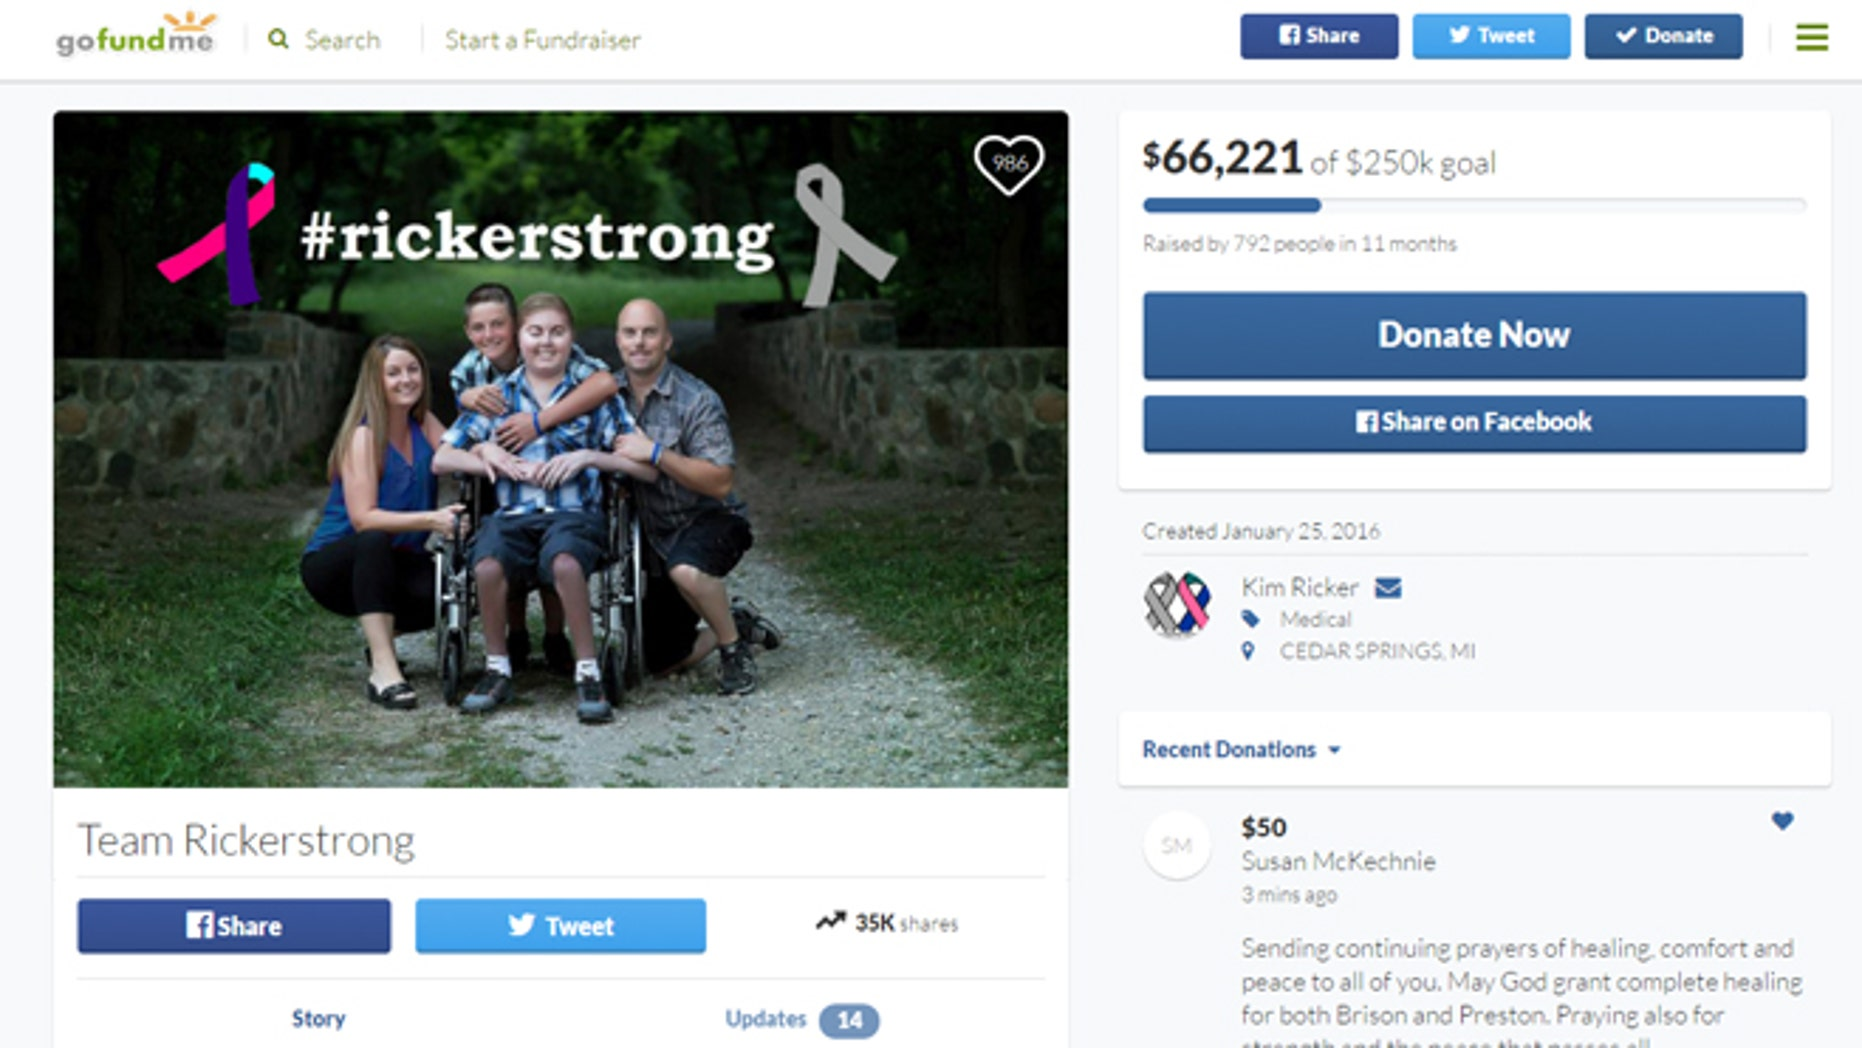 The Ricker family's two sons were diagnosed with cancer 11 months apart.